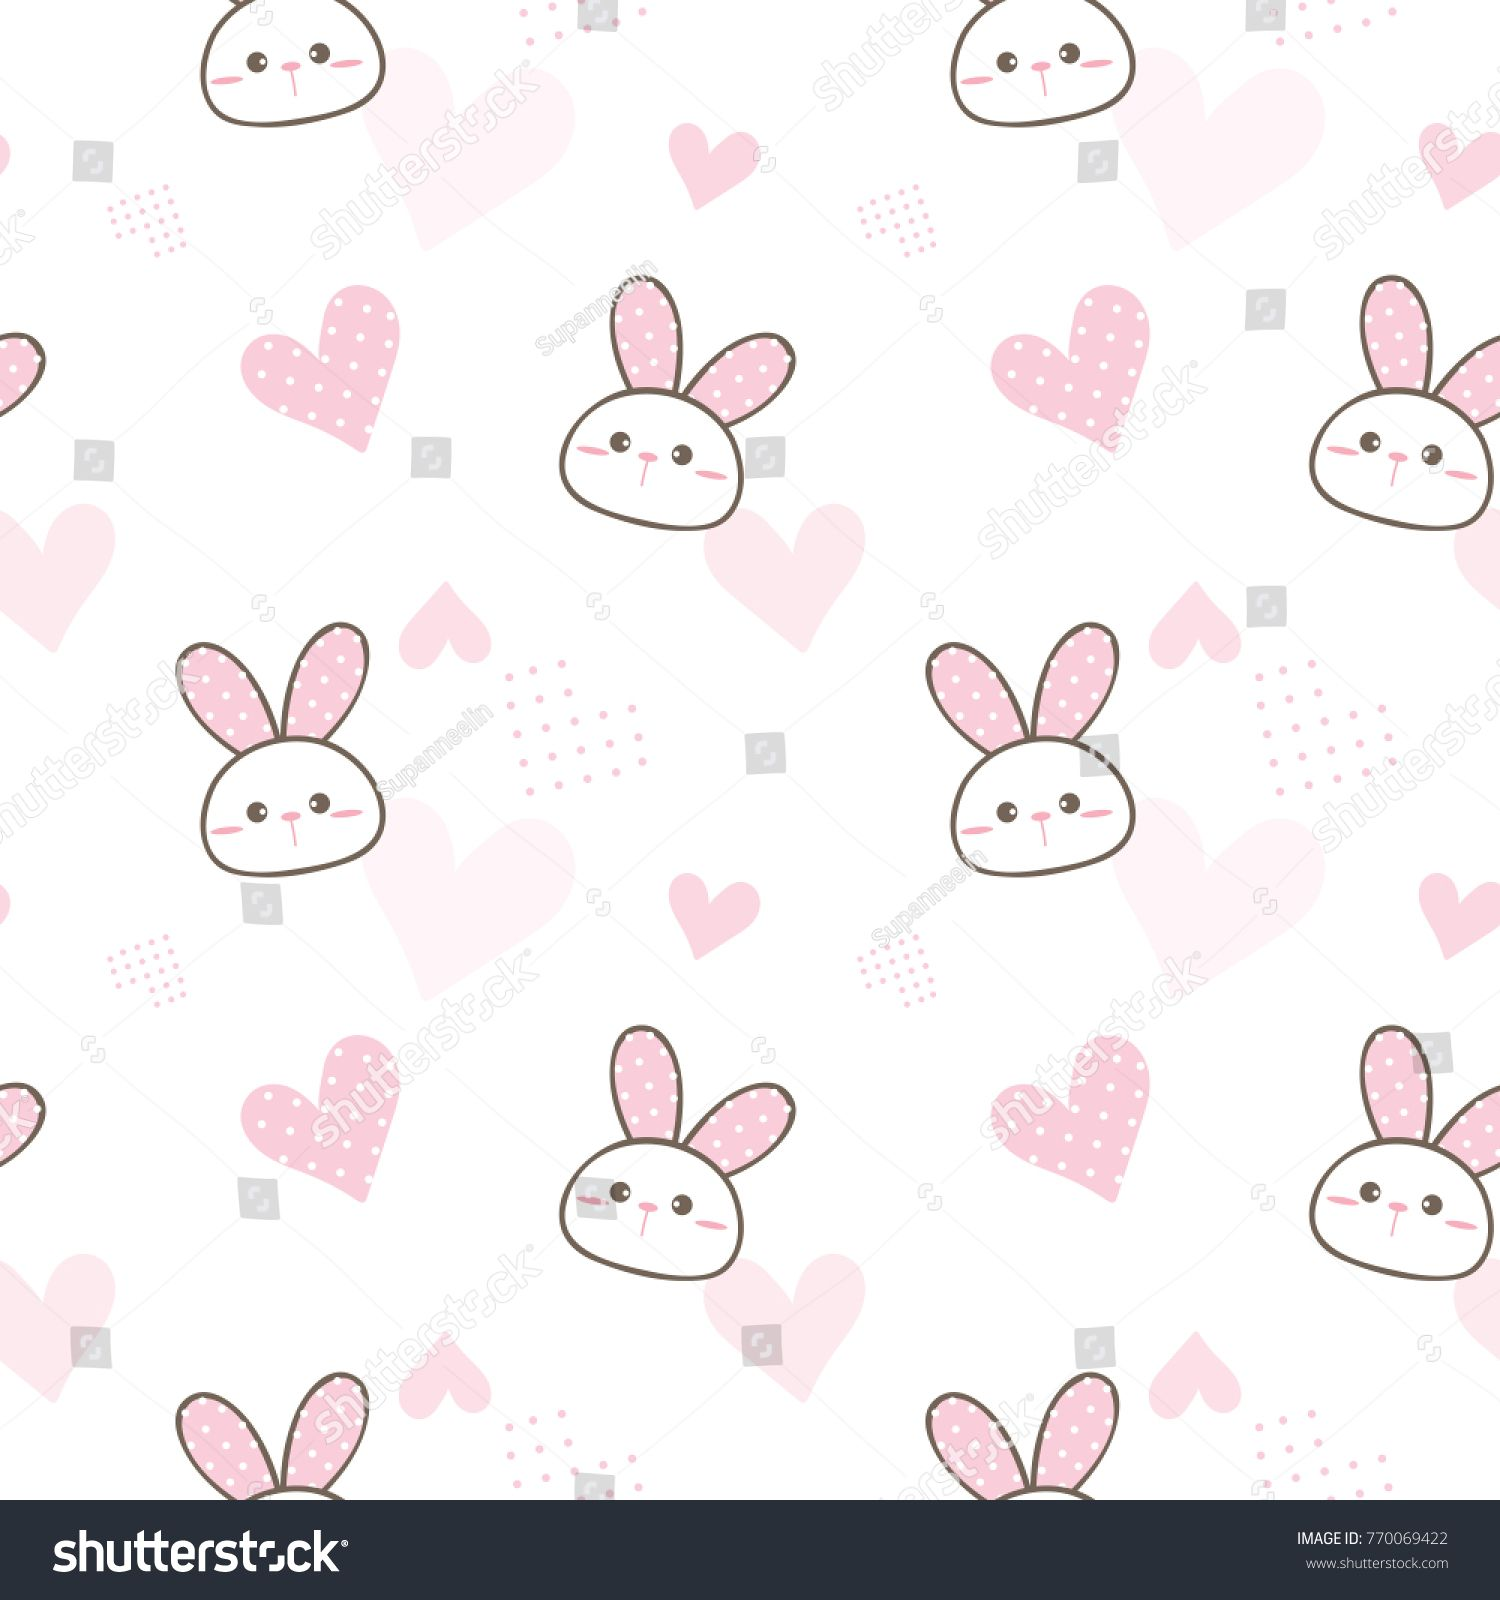 Seamless Pattern Of Cute Cartoon Bunny Face And Pastel Pink Heart Design On White Background Cartoon Bunny Cute Patterns Wallpaper Kids Prints